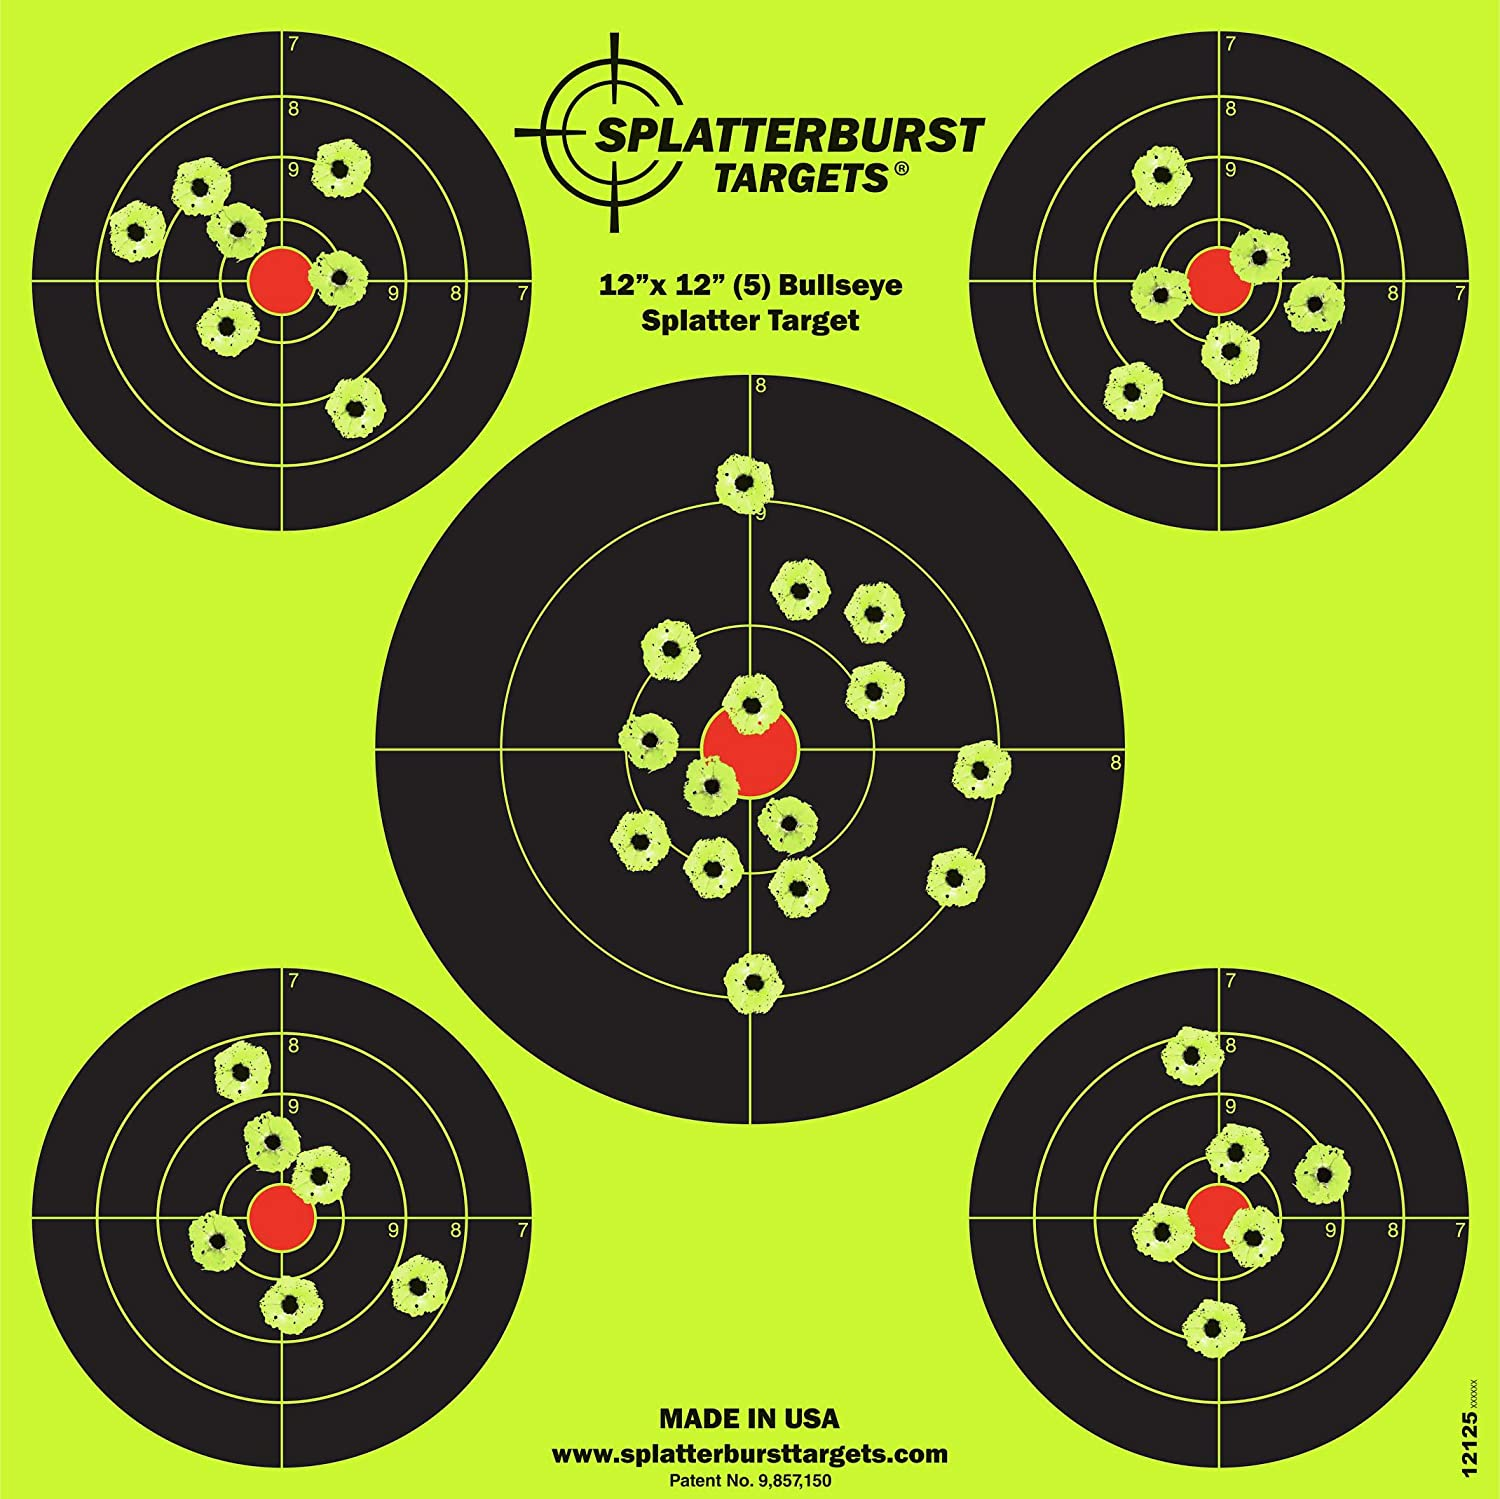 Splatterburst Targets - 12 x12 inch (5) Bullseye Reactive Shooting Target - Shots Burst Bright Fluorescent Yellow Upon Impact - Gun - Rifle - Pistol - Airsoft - BB Gun - Air Rifle : Sports & Outdoors